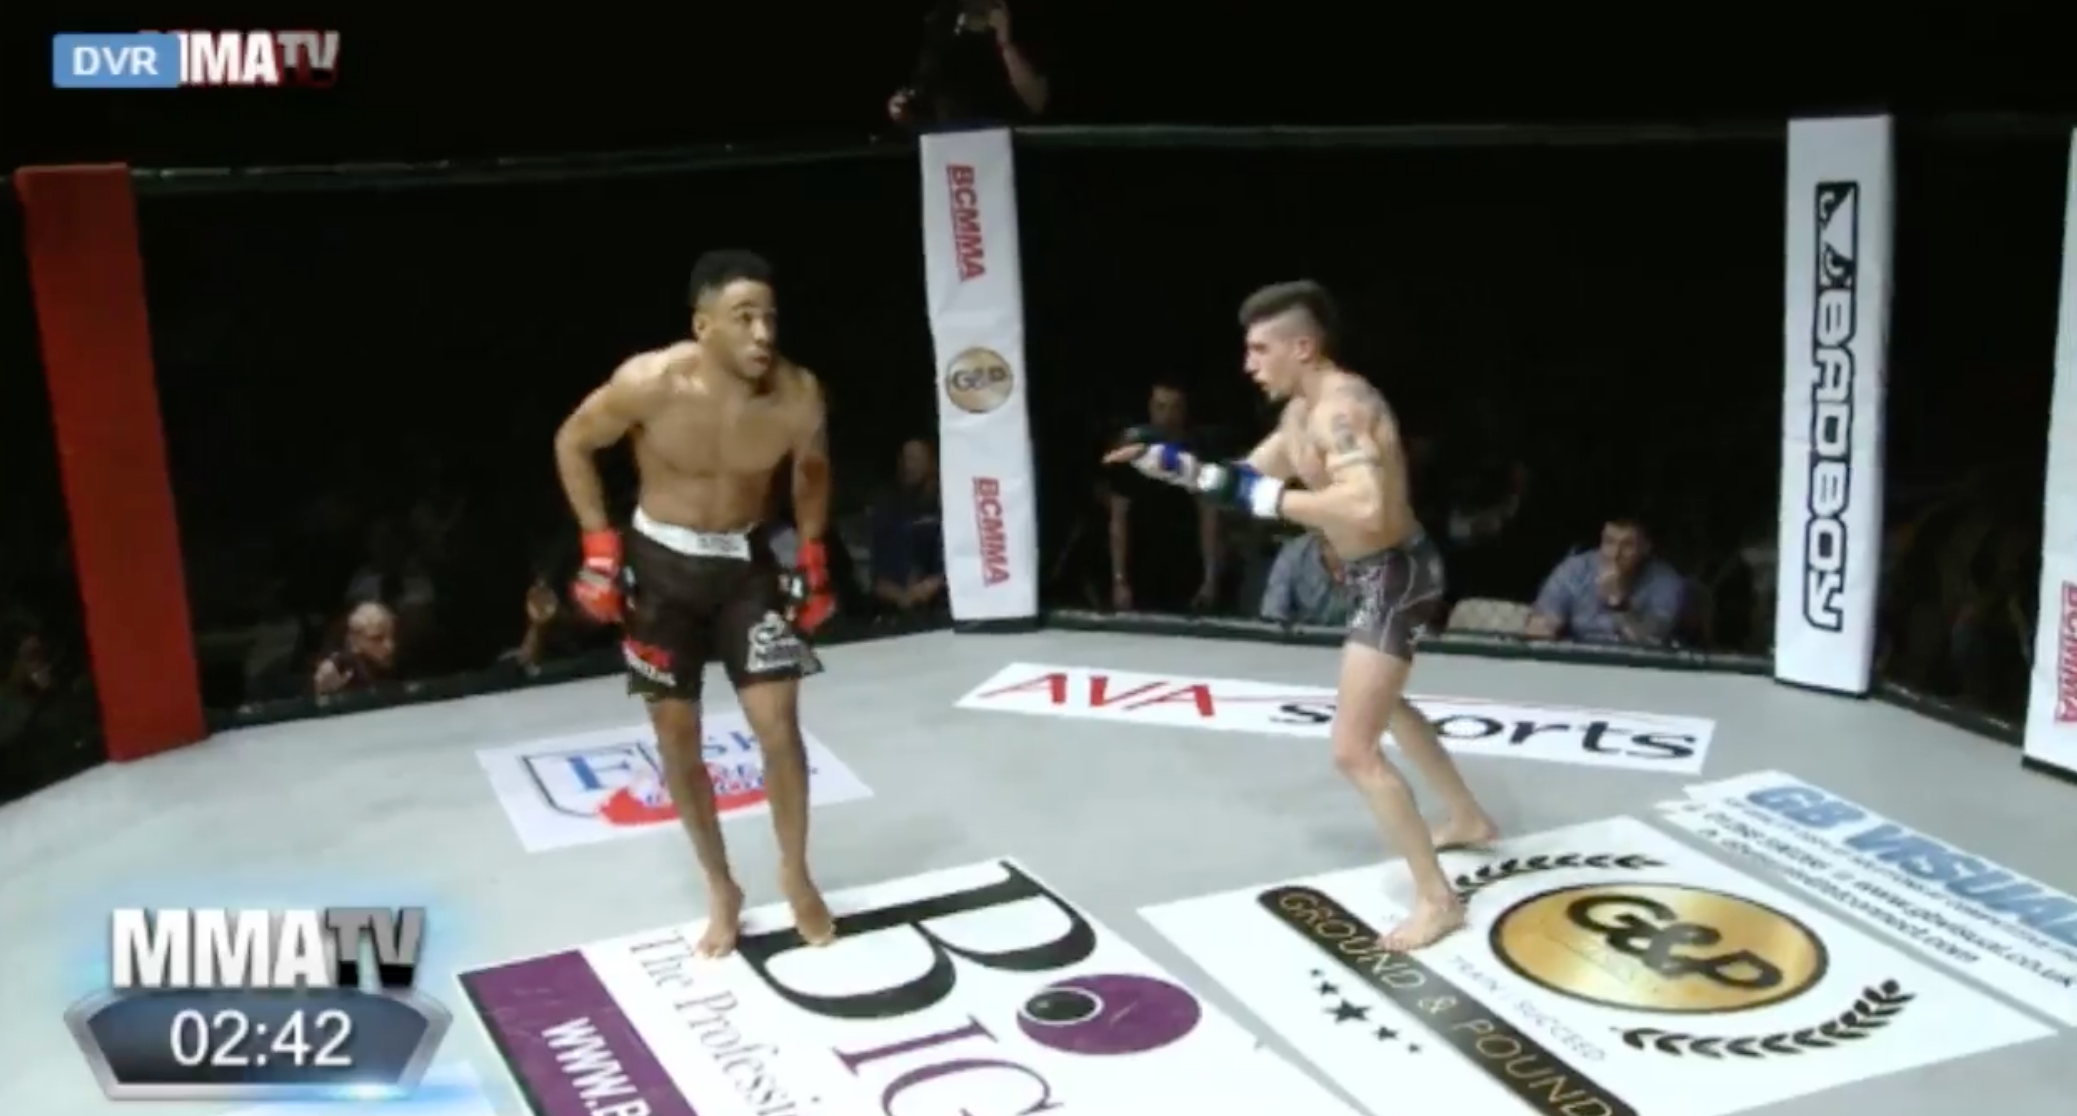 MMA Fighter Taunts Opponent, Gets Humbled By Vicious KO